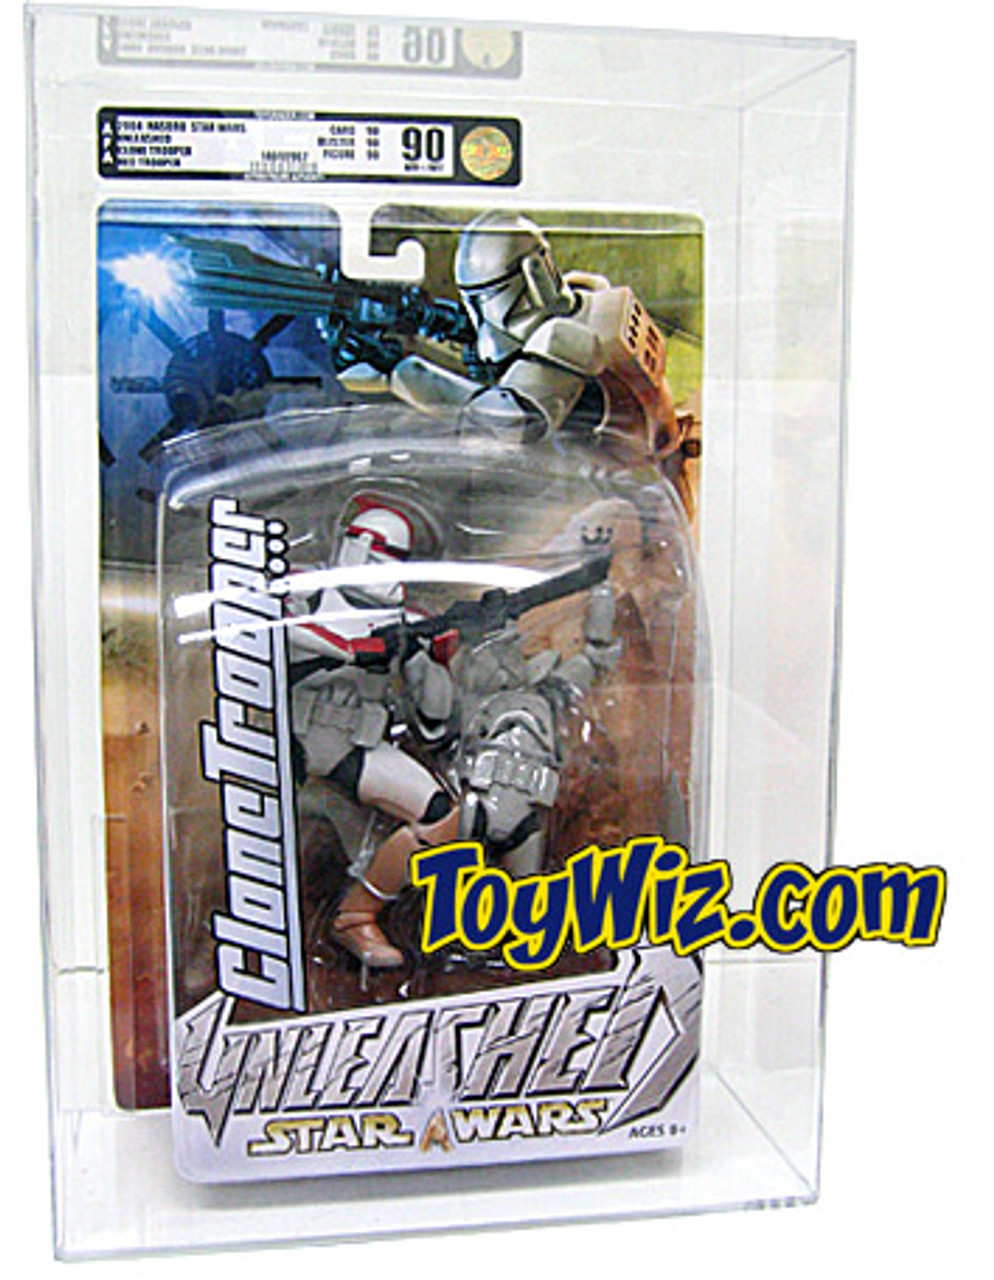 Star Wars Revenge of the Sith Unleashed Clone Trooper Action Figure [AFA 90] [AFA Graded 90]